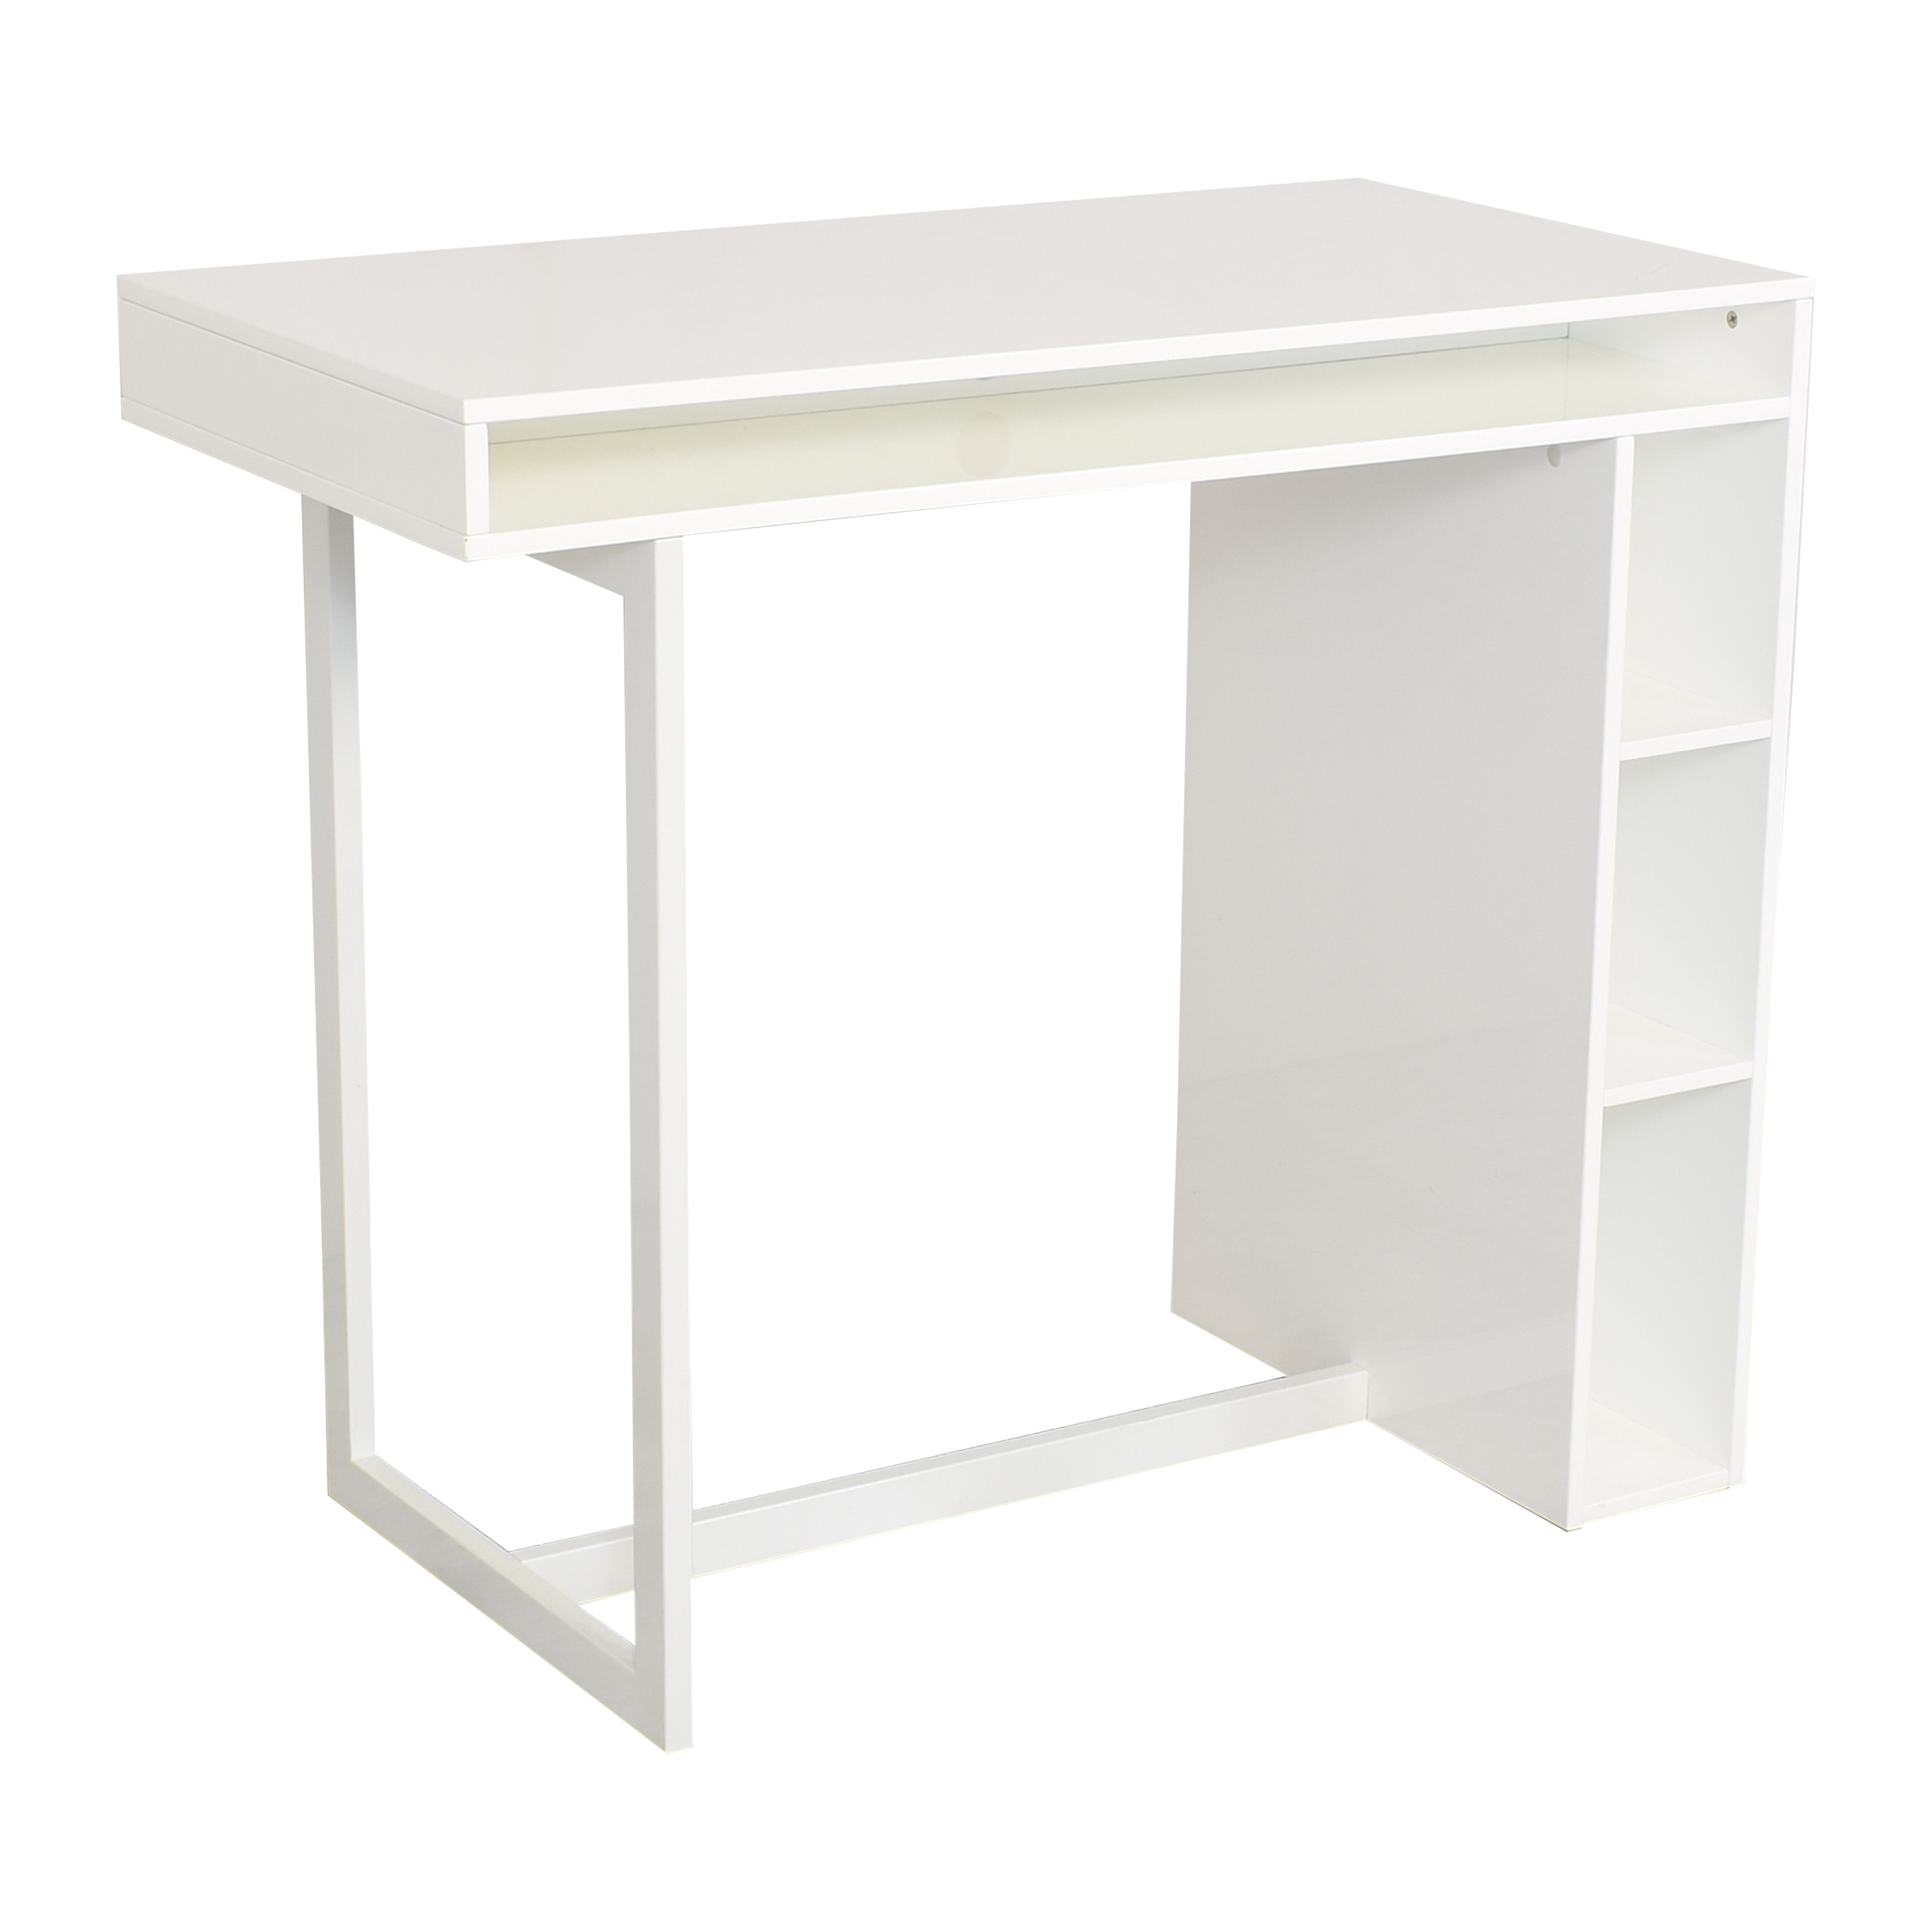 CB2 Public High Dining Table / Tables